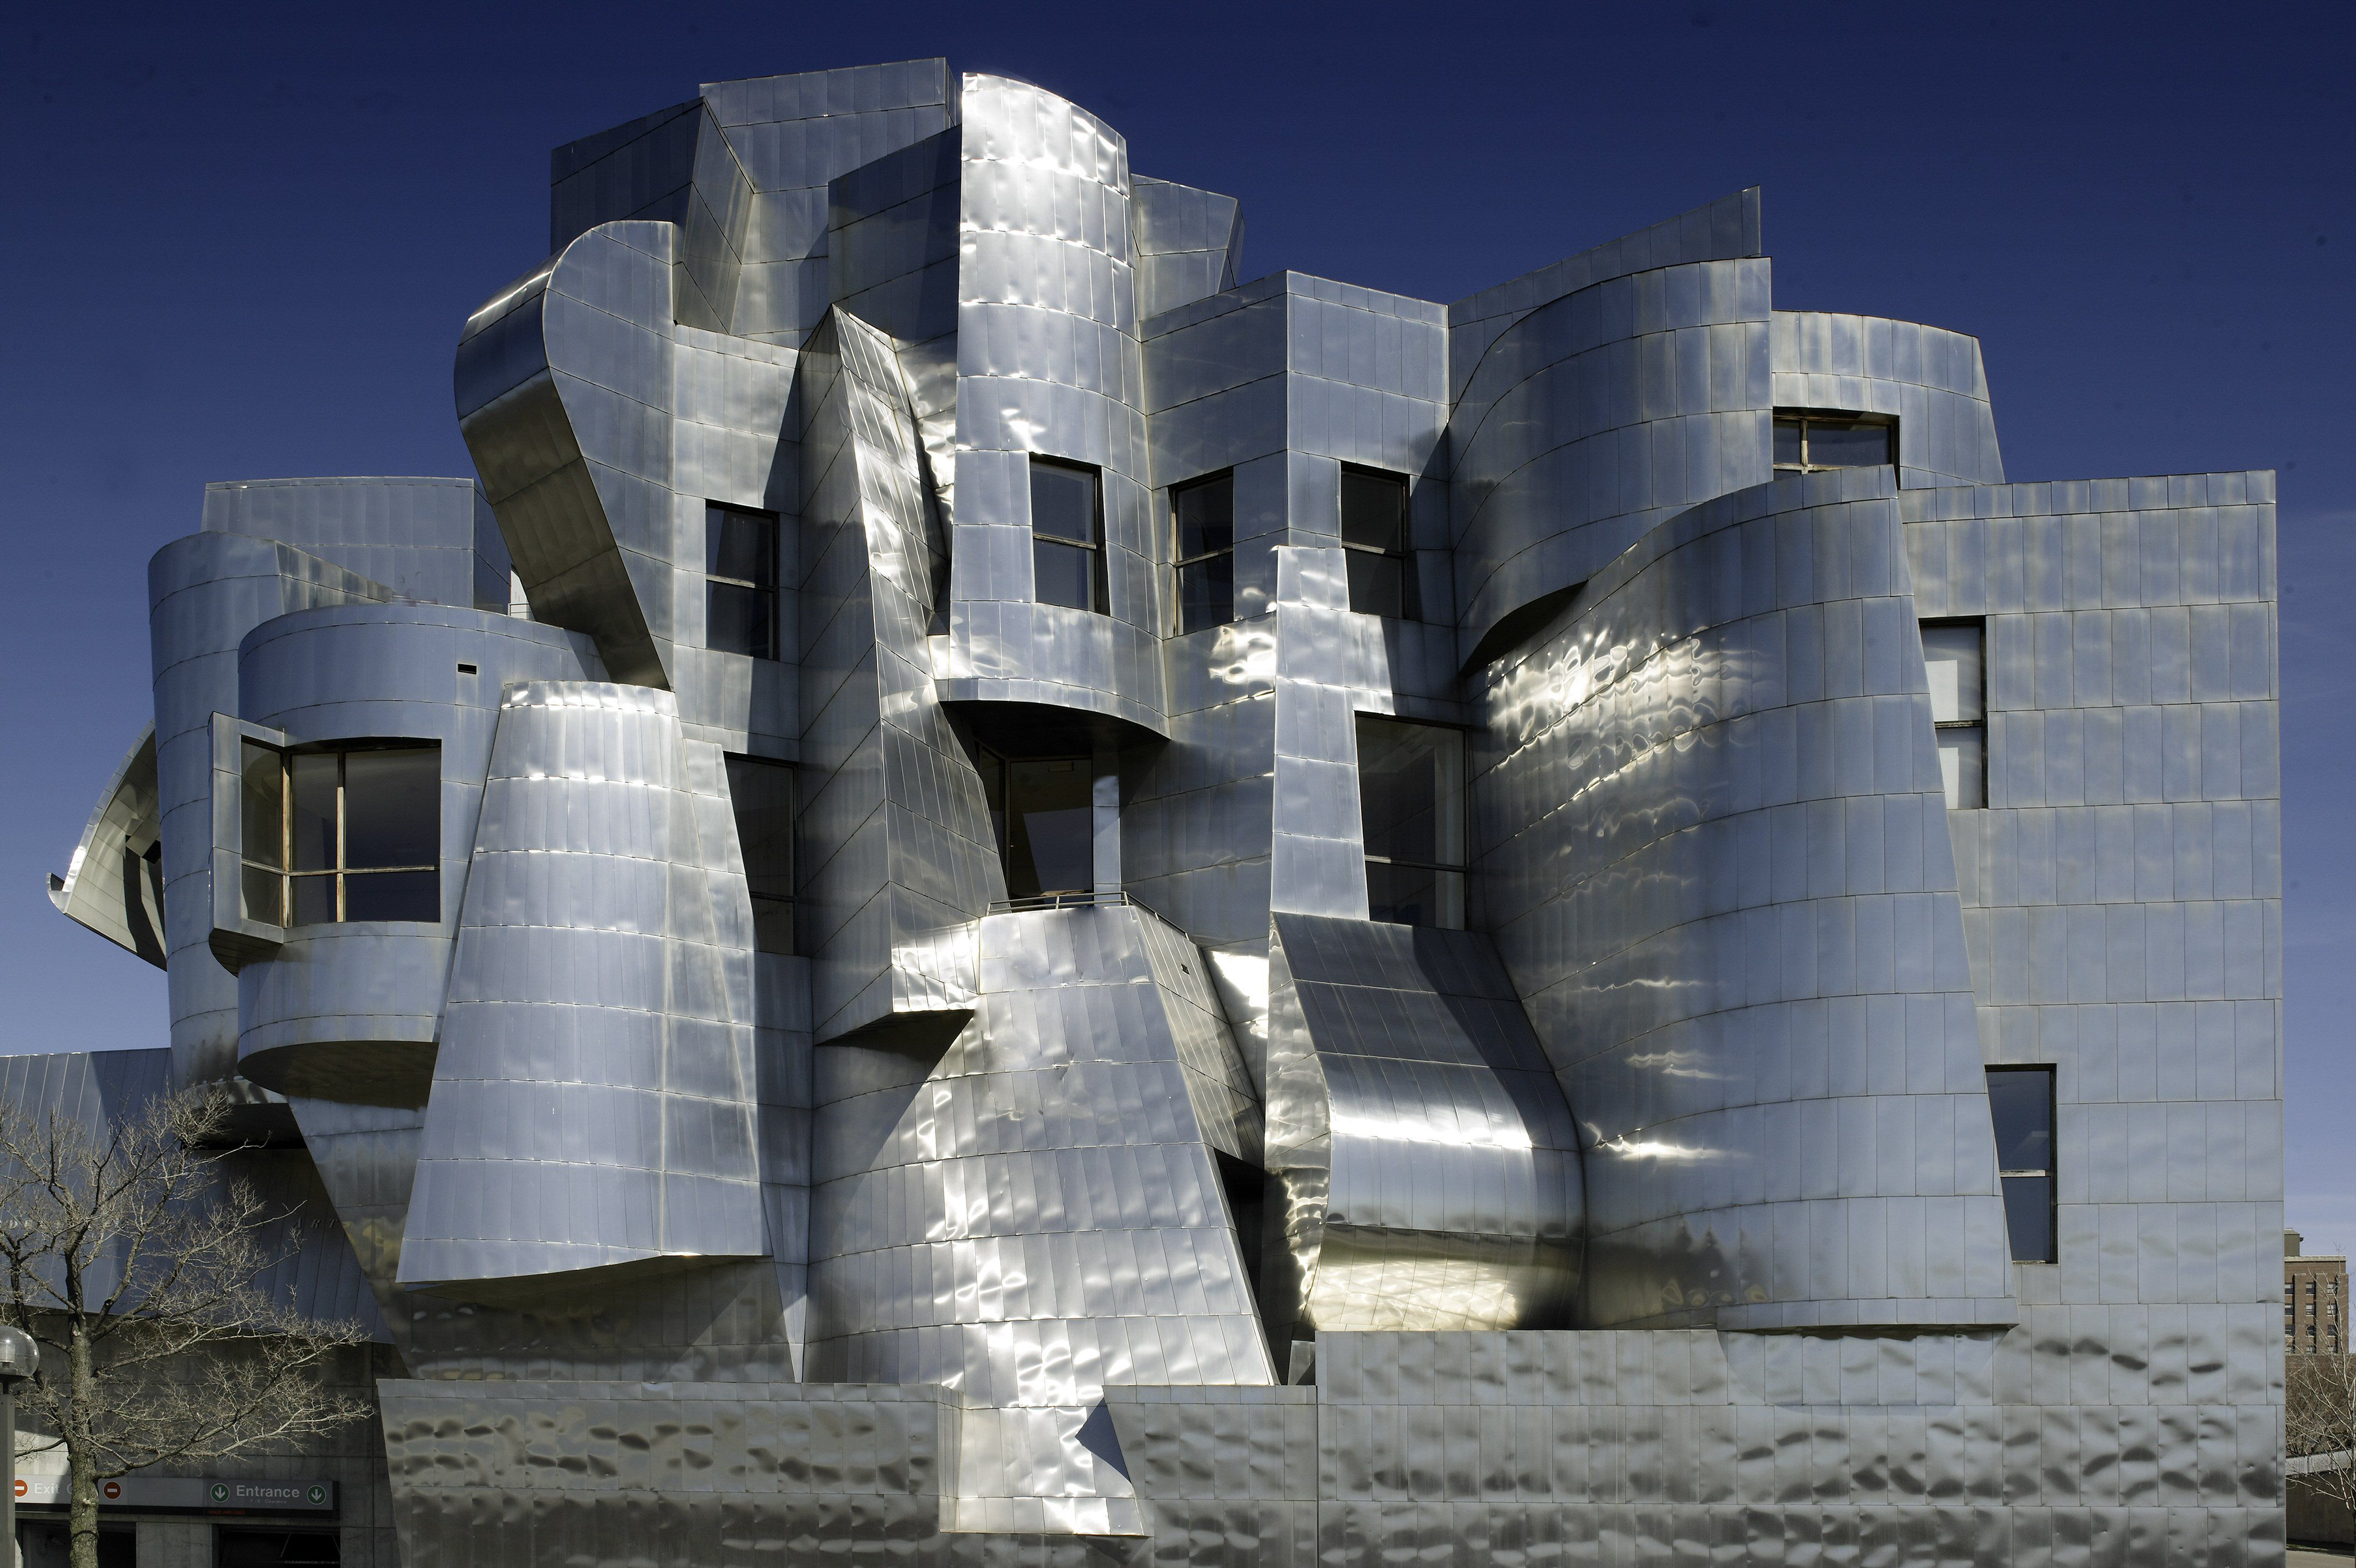 Stainless steel wavy skin facade with windows irregularly cut out